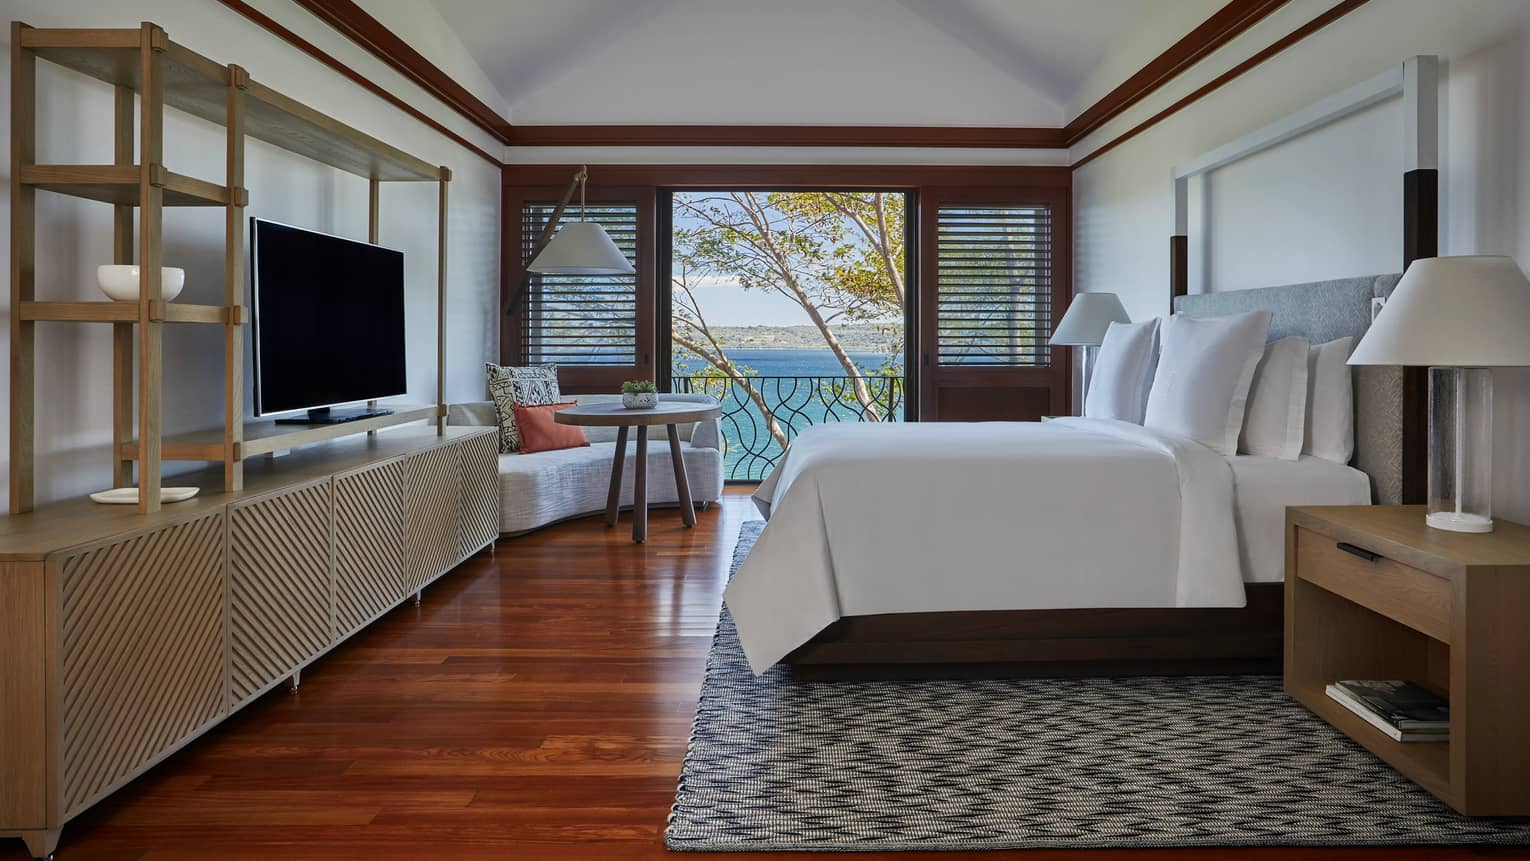 Canopy Suite Master Bedroom with Open Door Views of the Ocean